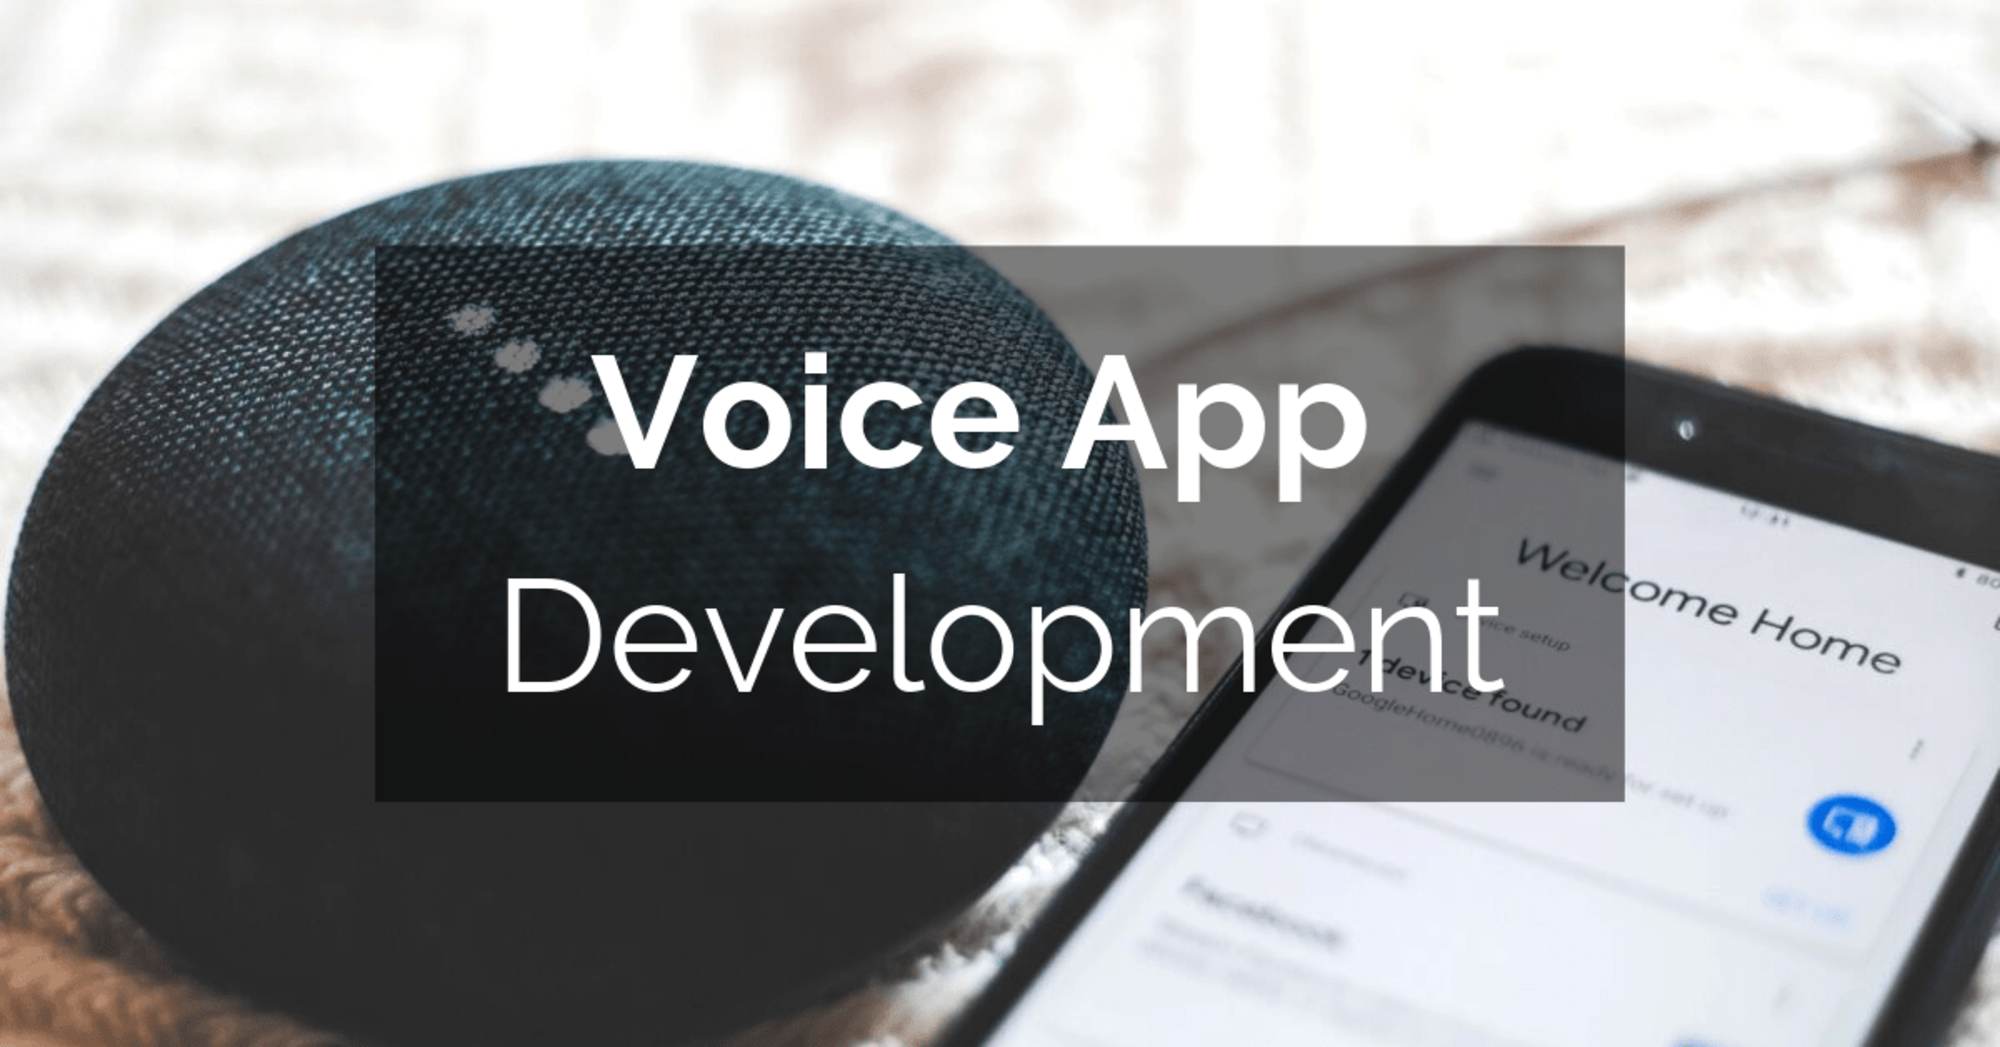 Voice App Development: Opportunities and Challenges